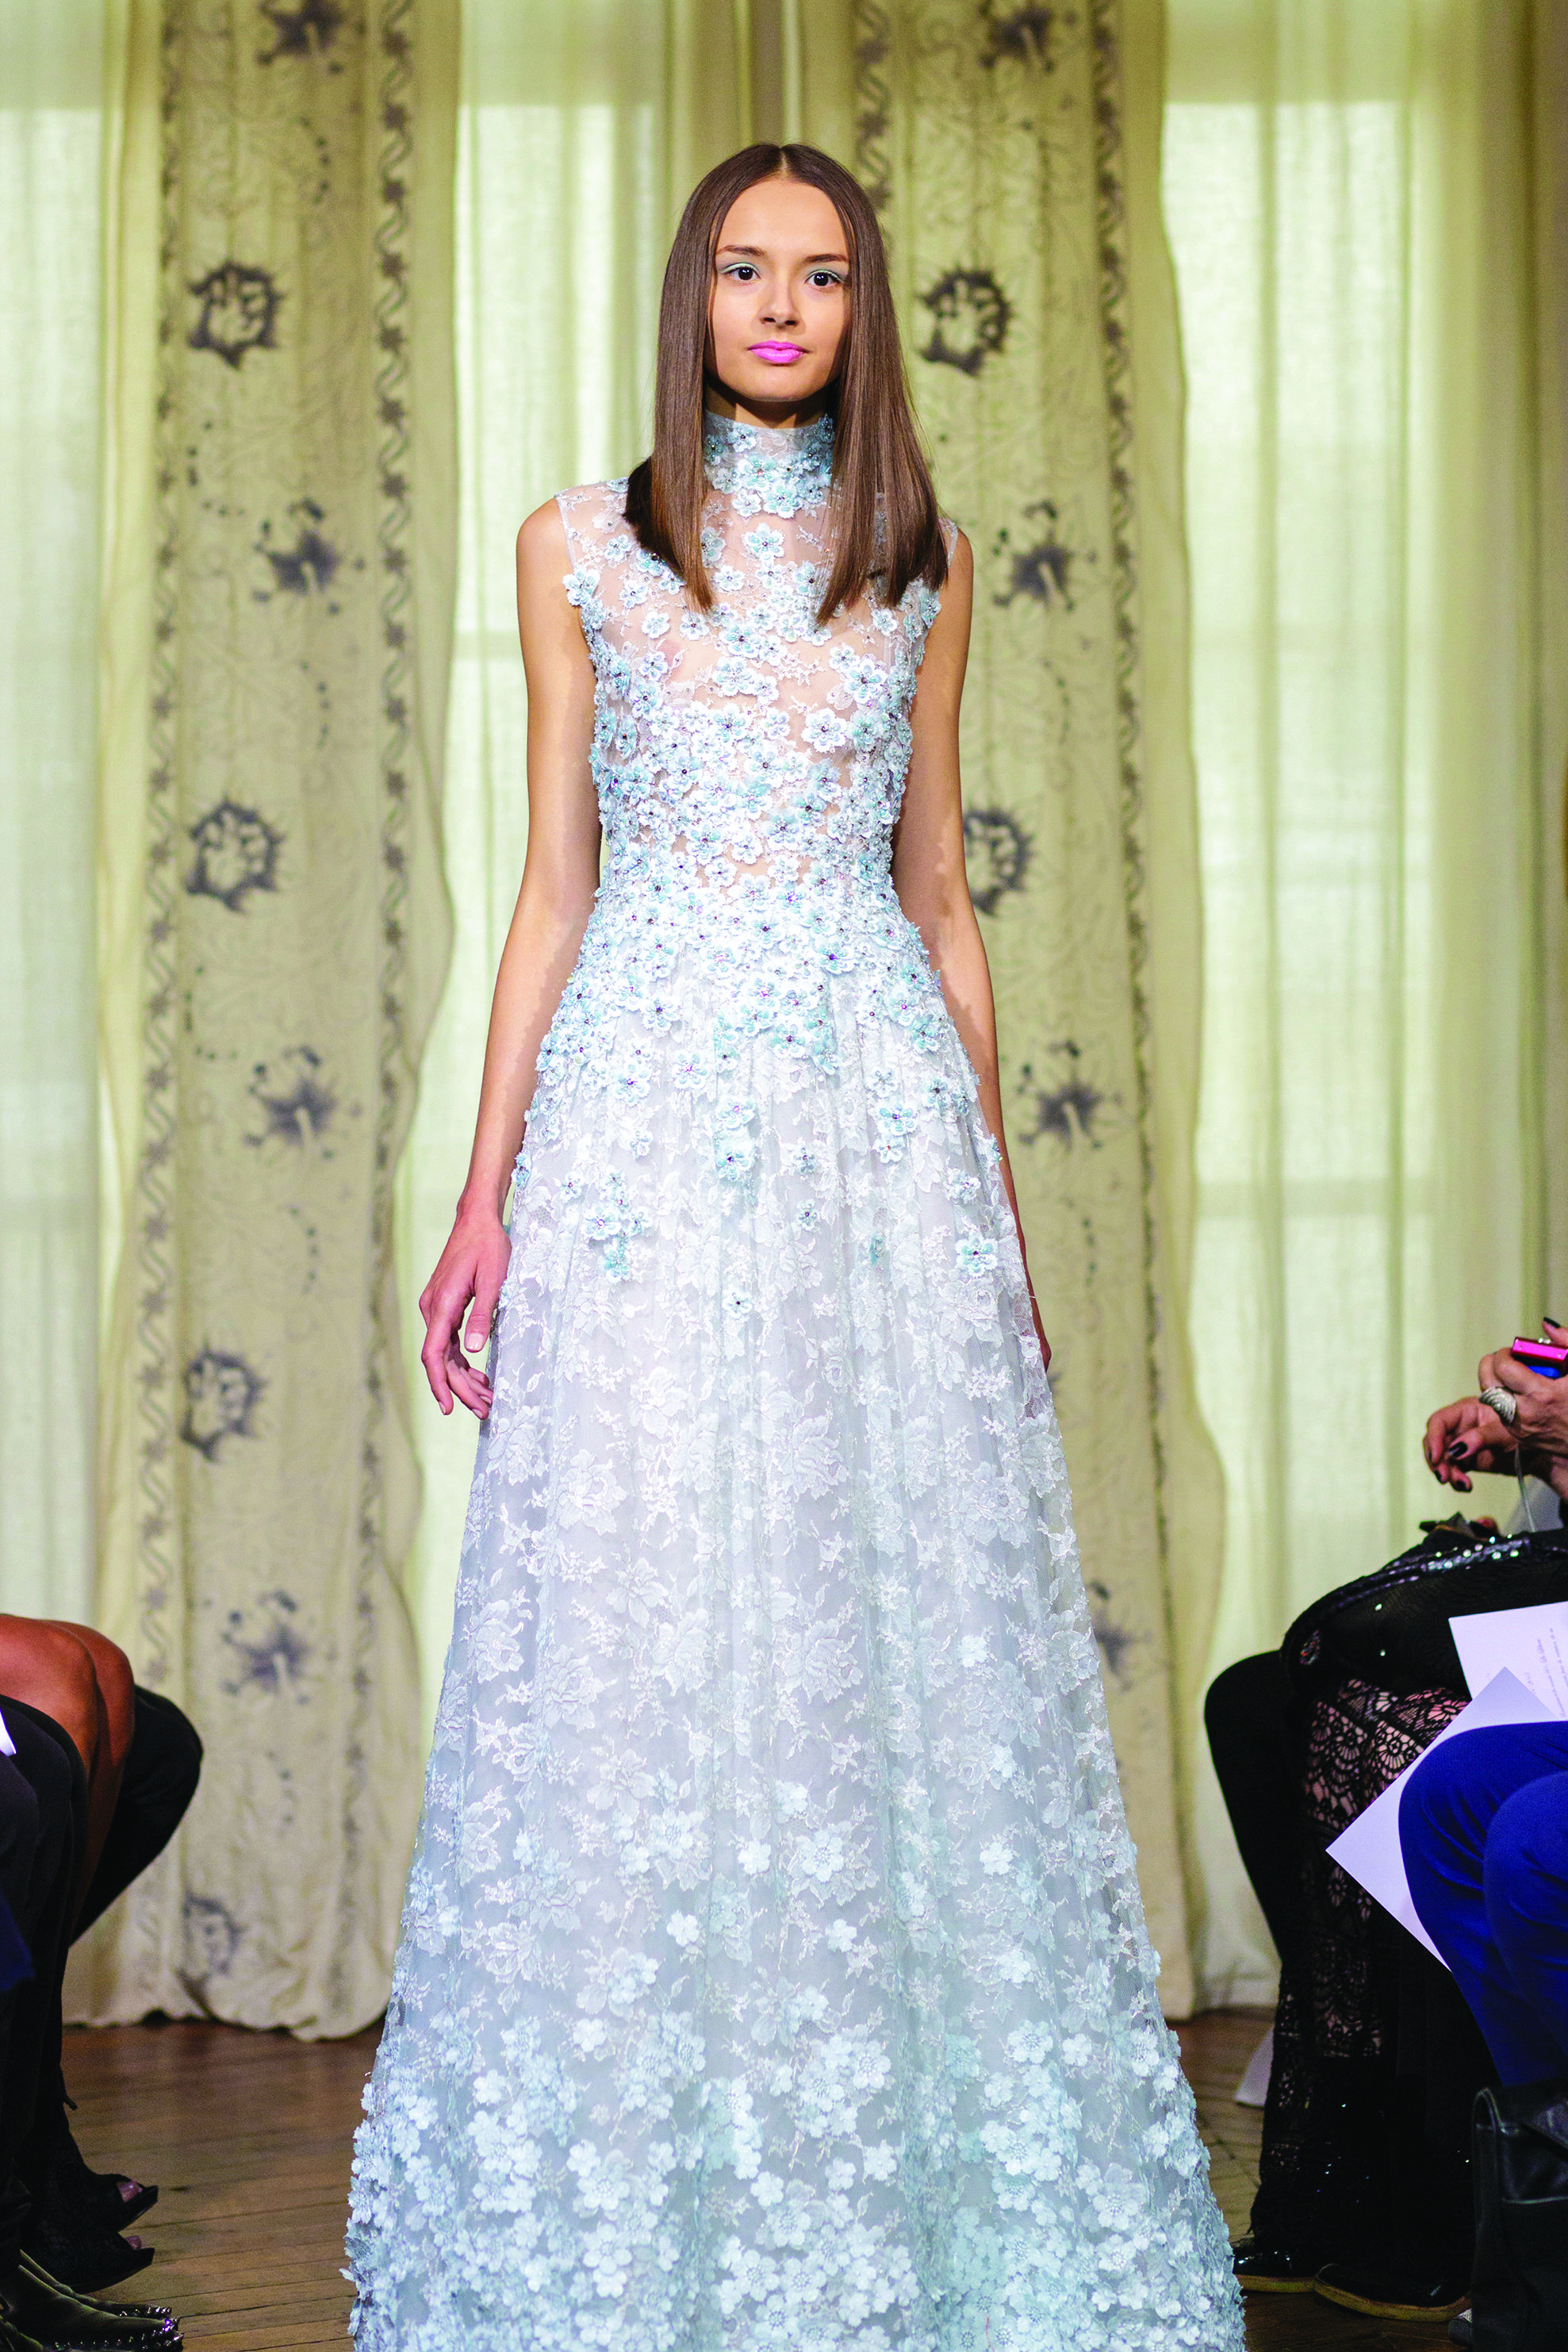 Fashion Designer DANY ATRACHE liberates the woman and gets her rid of the traditional line. Sky blue dress with flowers embroidered